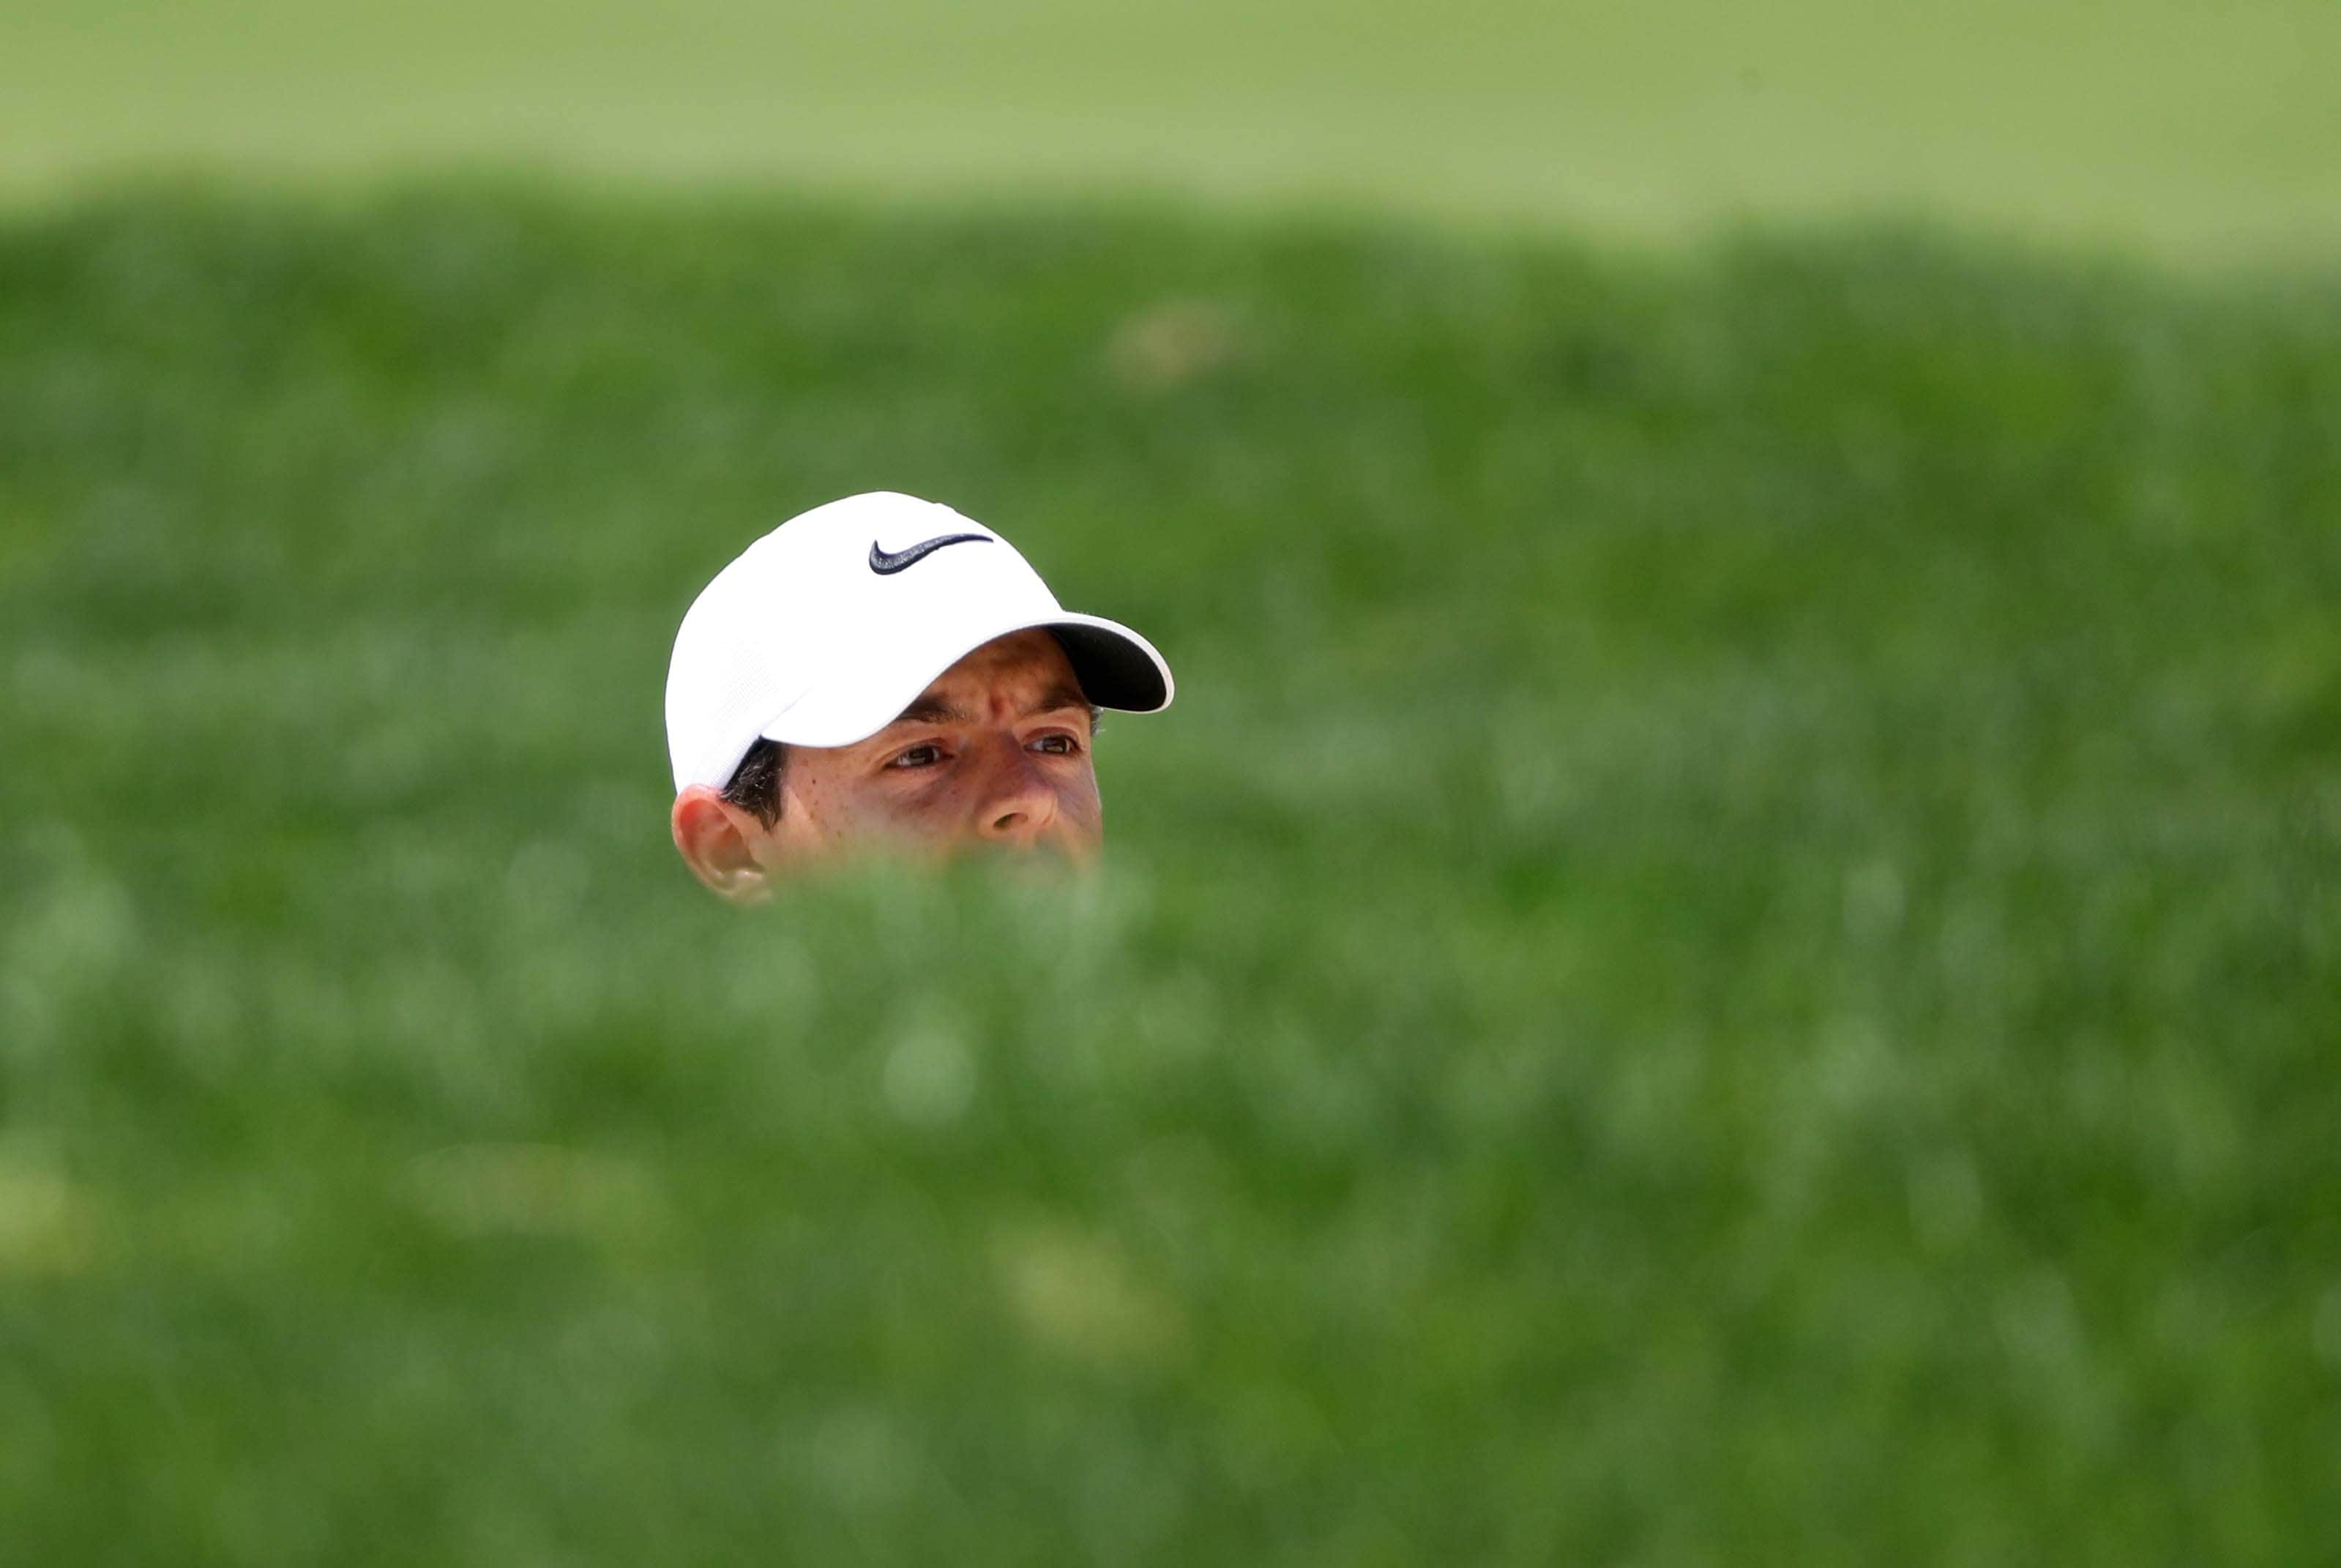 If he sees his shadow, there'll be six more weeks of FedEx Cup Playoffs